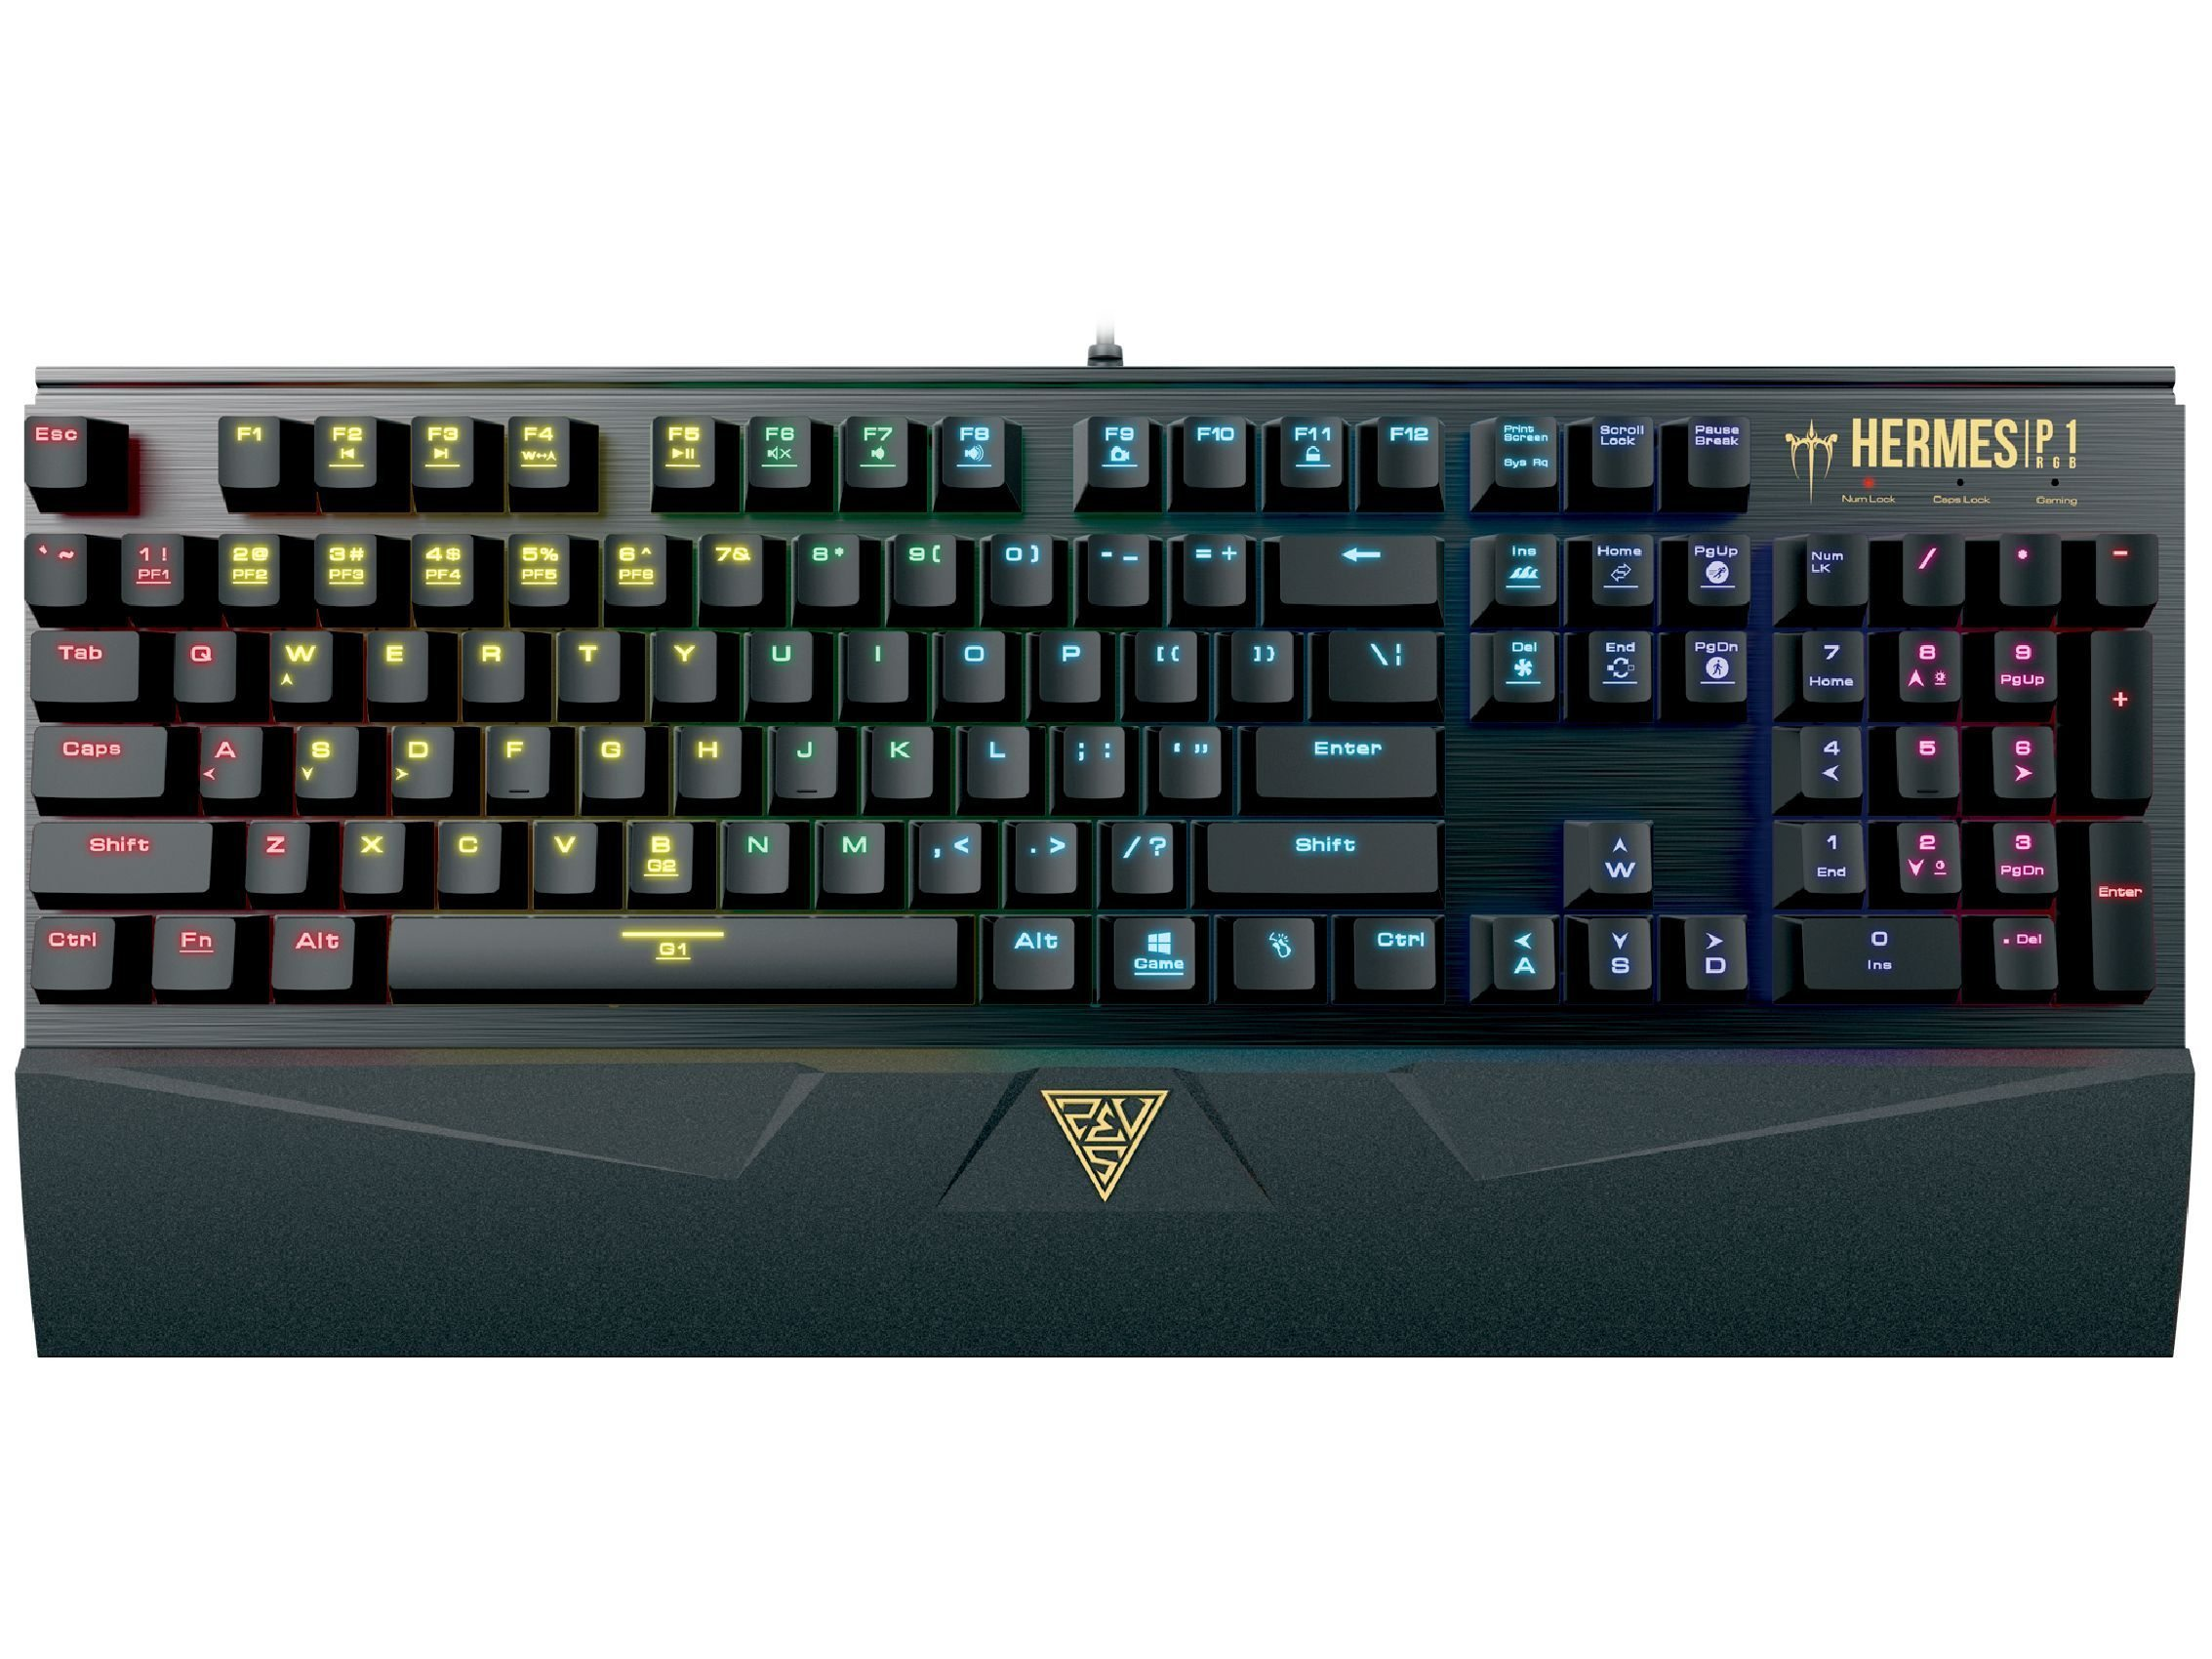 геймърска клавиатура Gaming Keyboard Mechanical 104 keys - HERMES P1 RGB